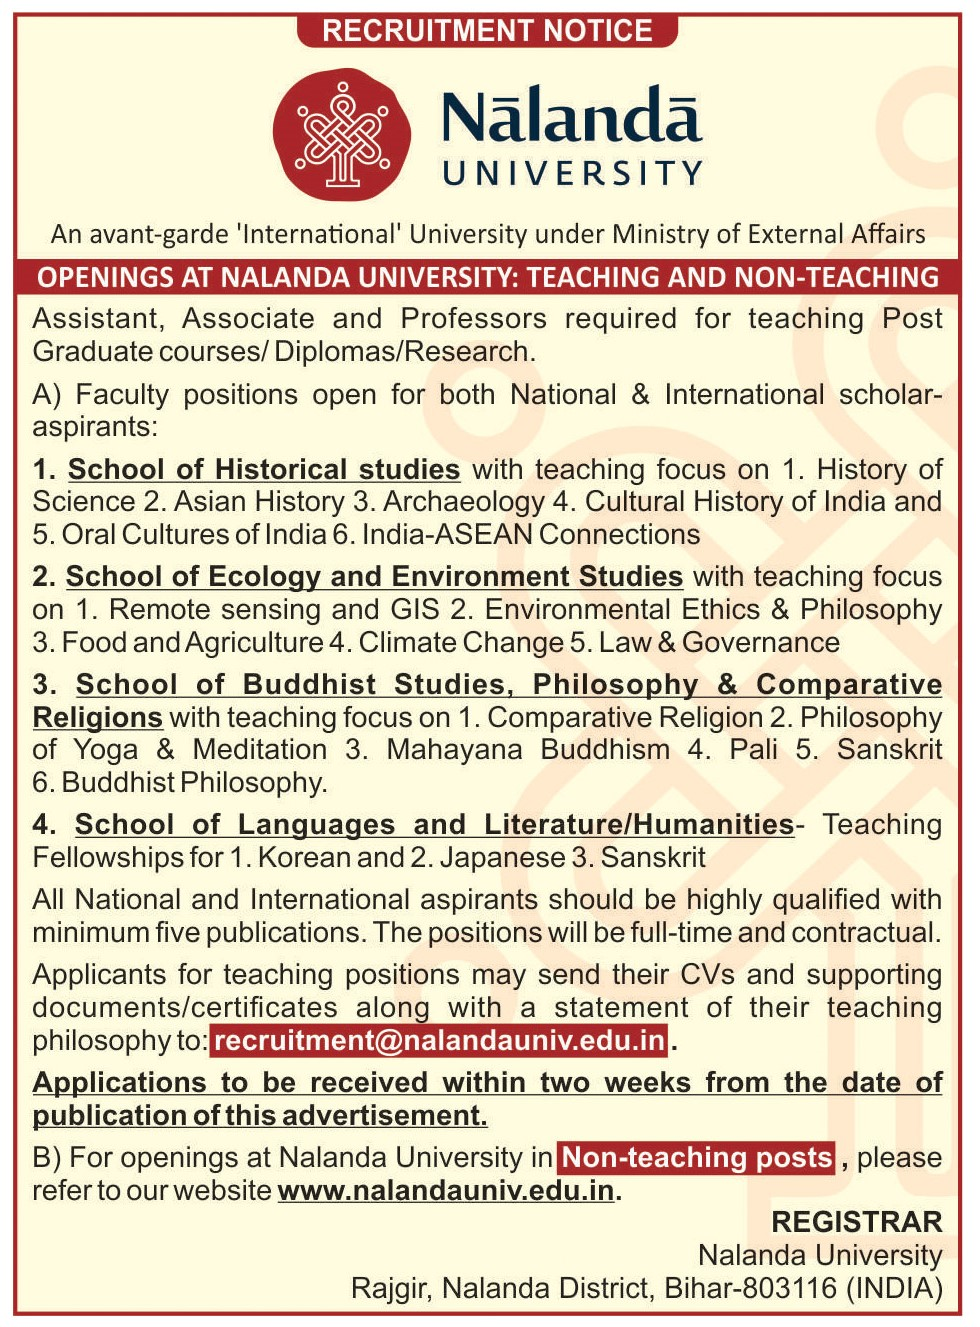 Nalanda University | Jobs and Internships - Nalanda University